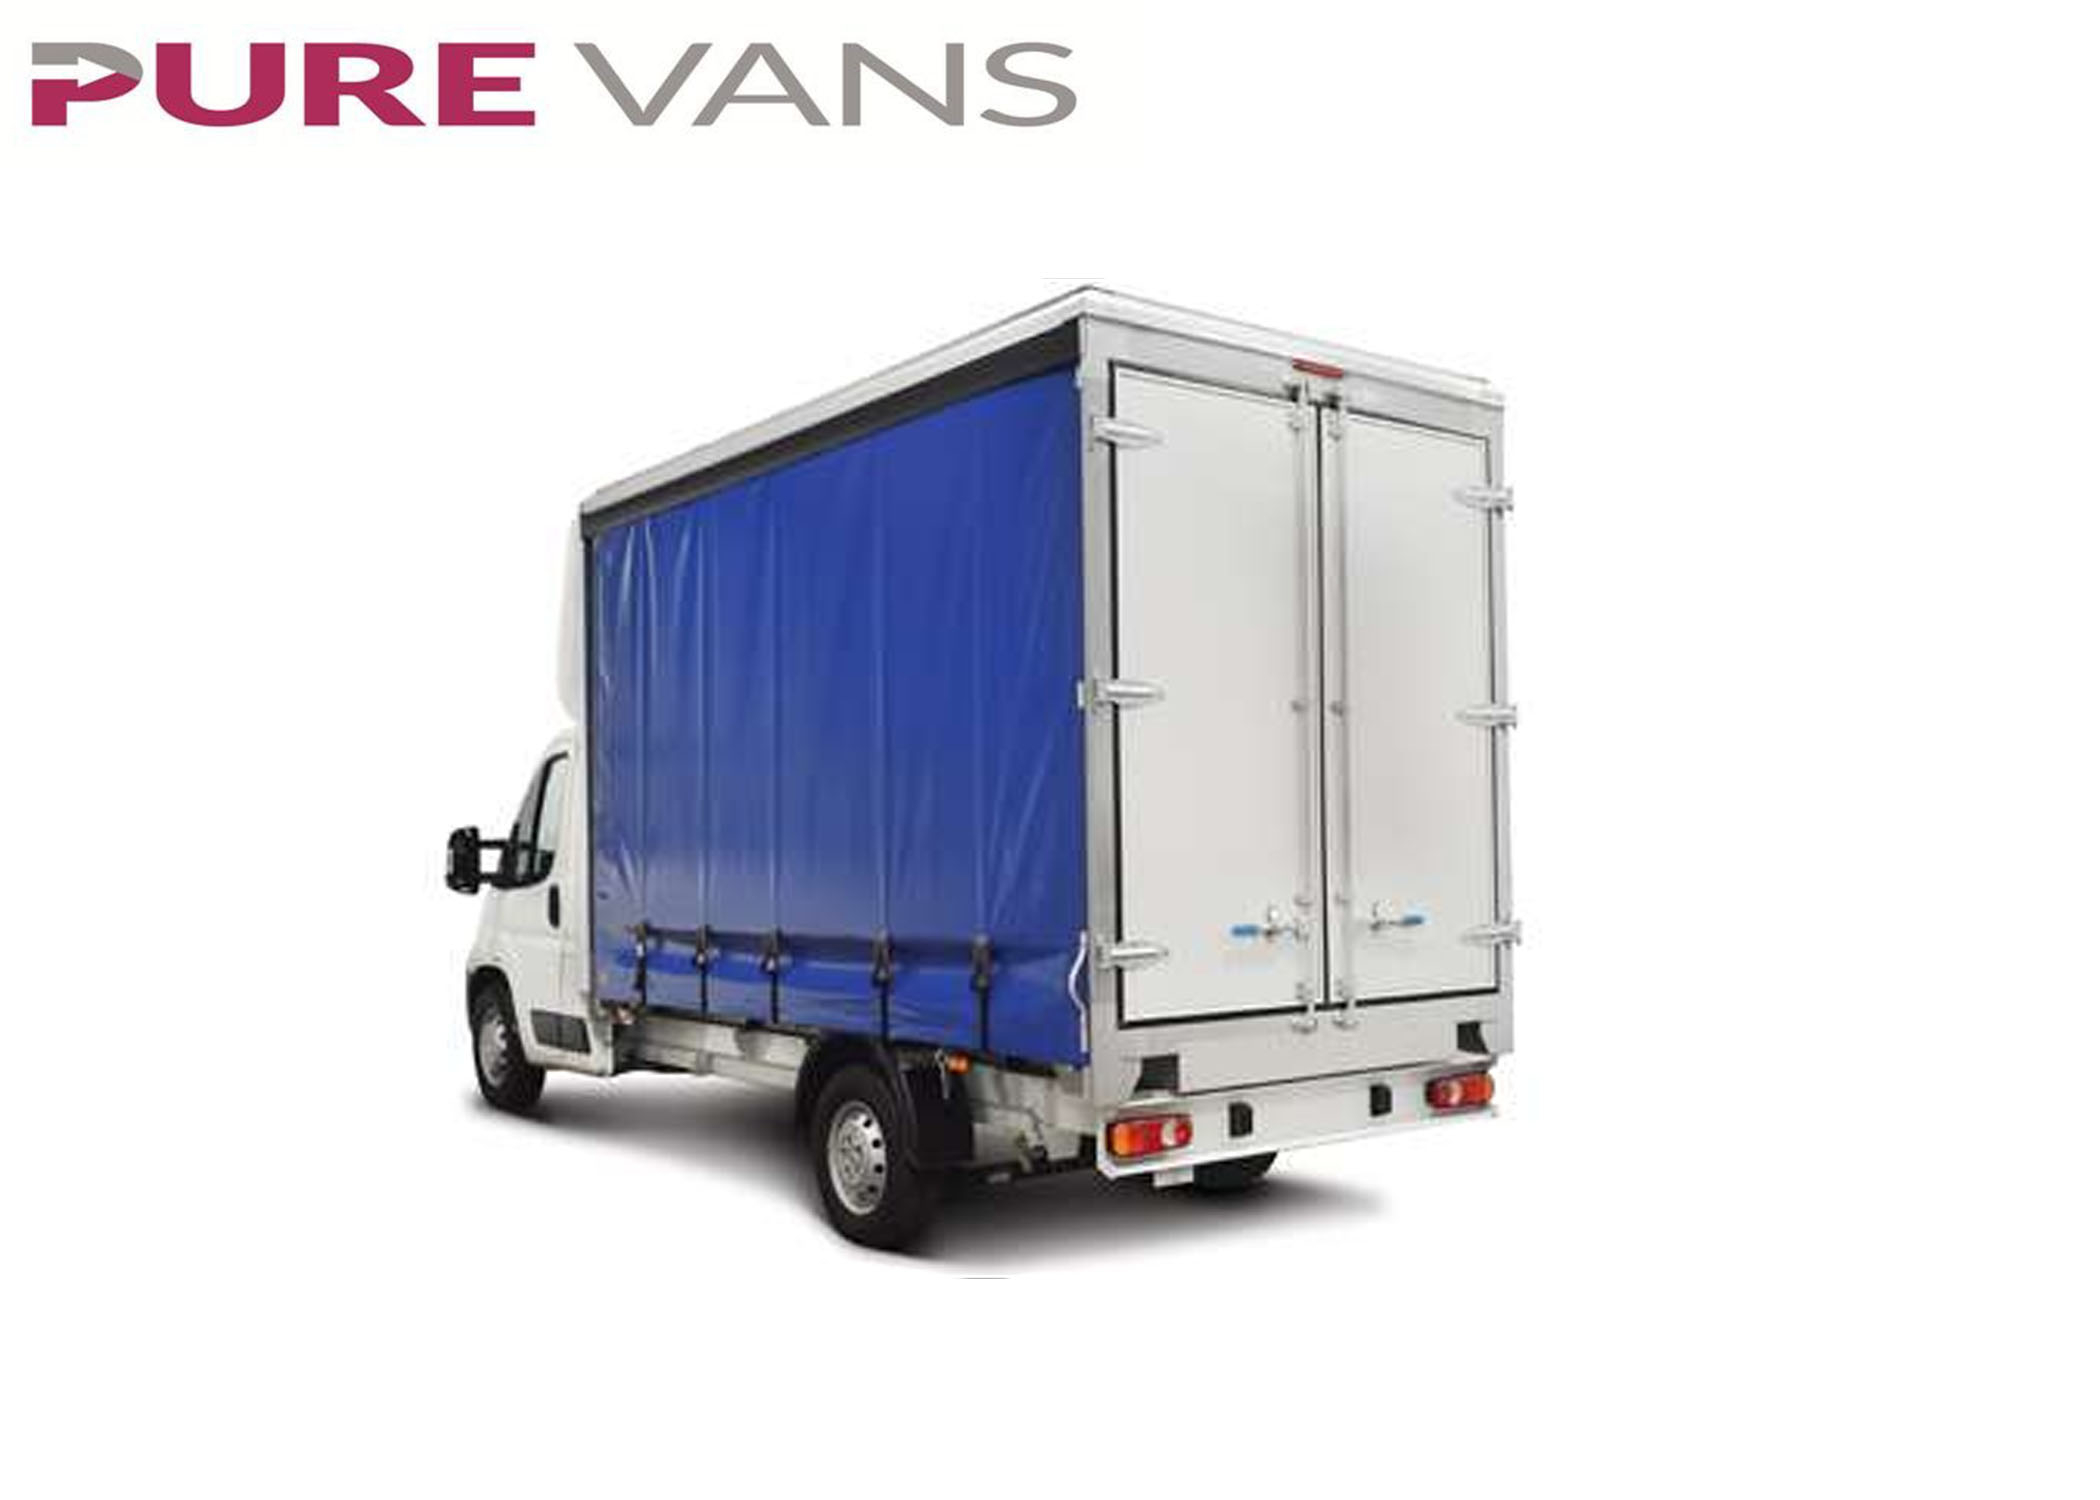 CITROEN RELAY L3 160PS CURTAIN SIDE back view.jpg